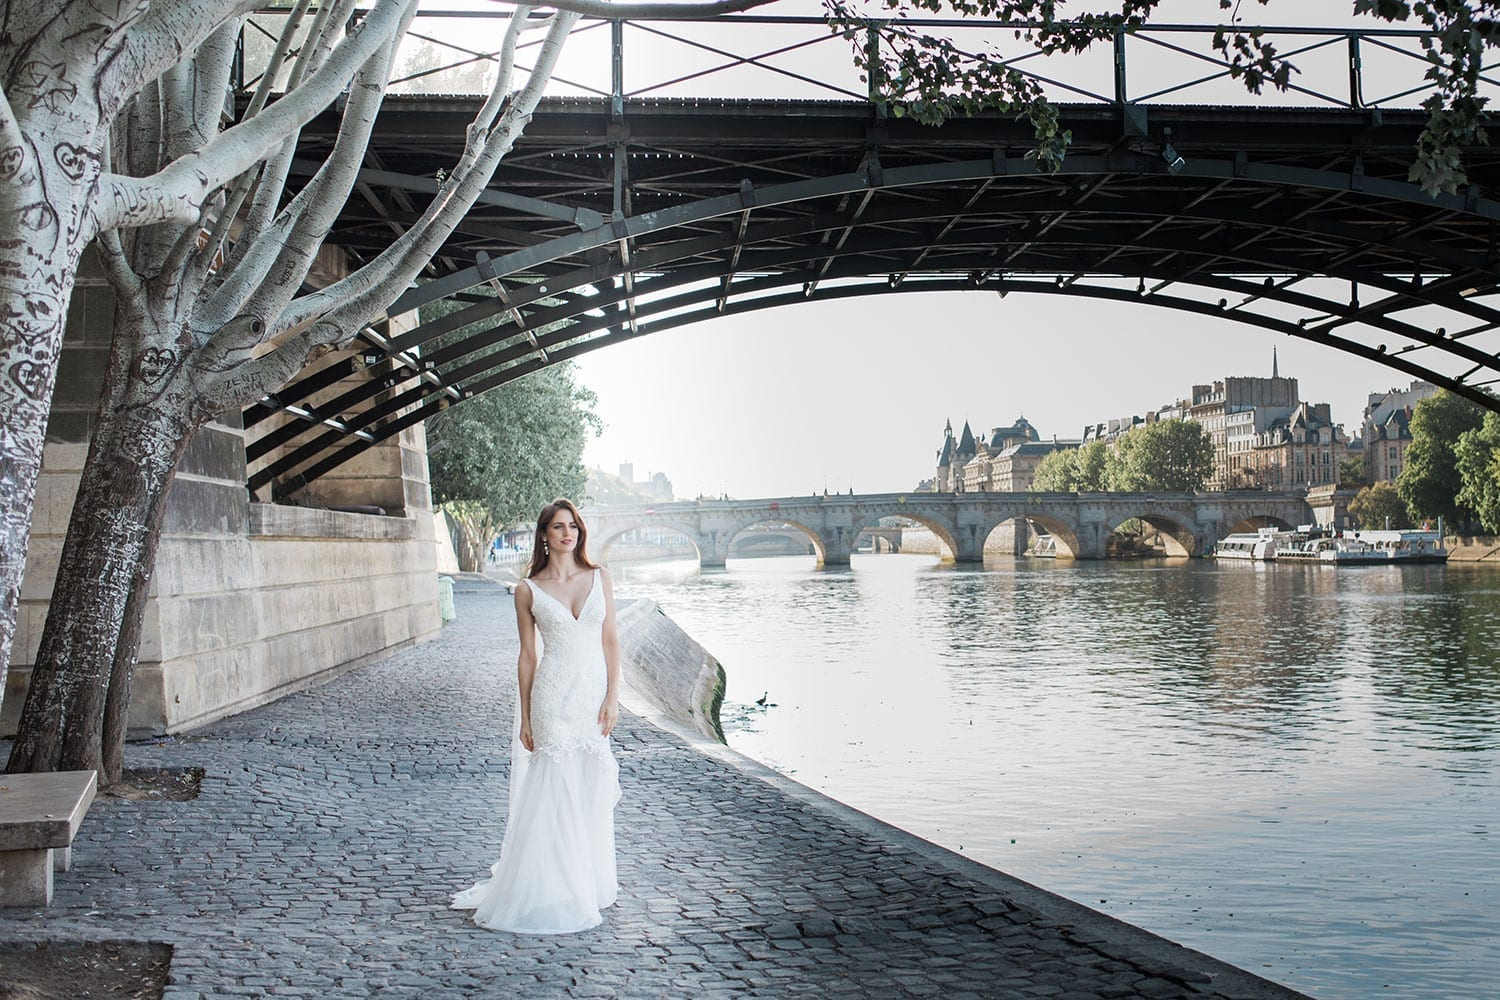 Model wearing Vinka Design Joanna Wedding Dress, a gorgeous wedding dress made with six different laces to create the beautiful bodice detail. The gown is a slim fit with a deep V neck and silk and tulle skirt. Worn next to river Seine in Paris.